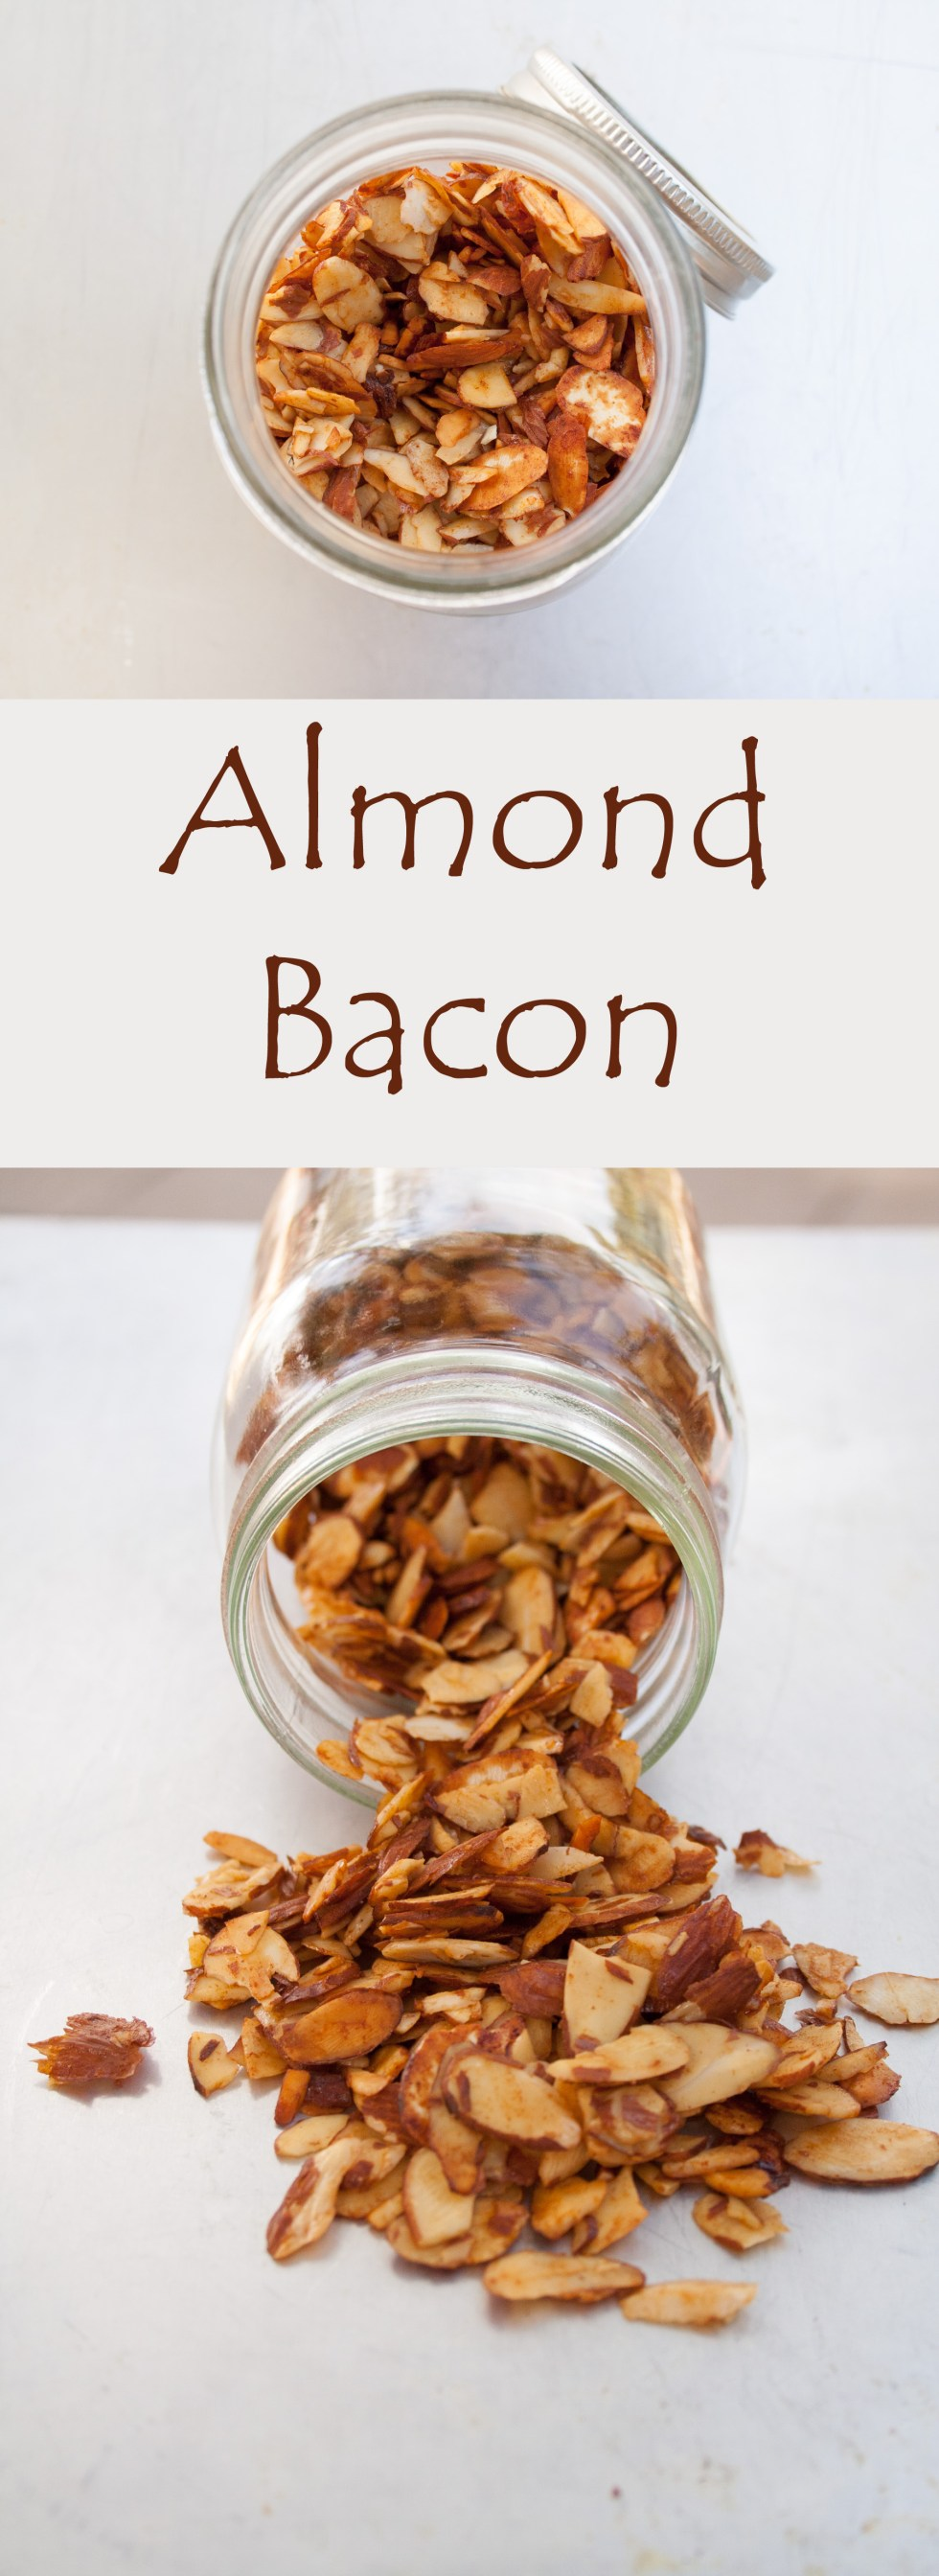 Almond Bacon (vegan, gluten free) - This easy vegan bacon is smoky with a touch of sweet. It adds a nice crunchy texture to any dish you use it in.